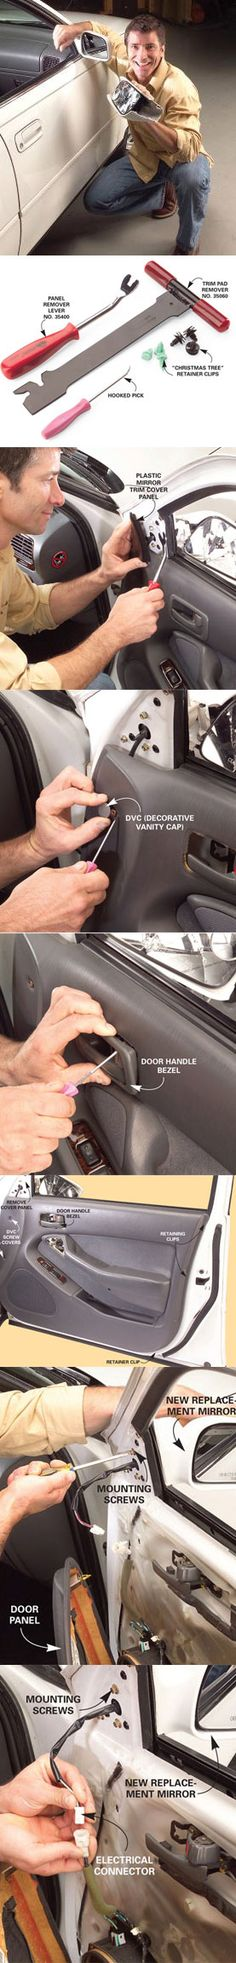 Replacing a broken side view mirror is easier and cheaper than you might think. Once you have the right tools, the hardest part is just finding the hidden fasteners. We will walk you through it step-by-step at http://www.familyhandyman.com/DIY-Projects/Car---Truck/Auto-Repair/replace-a-broken-side-view-mirror